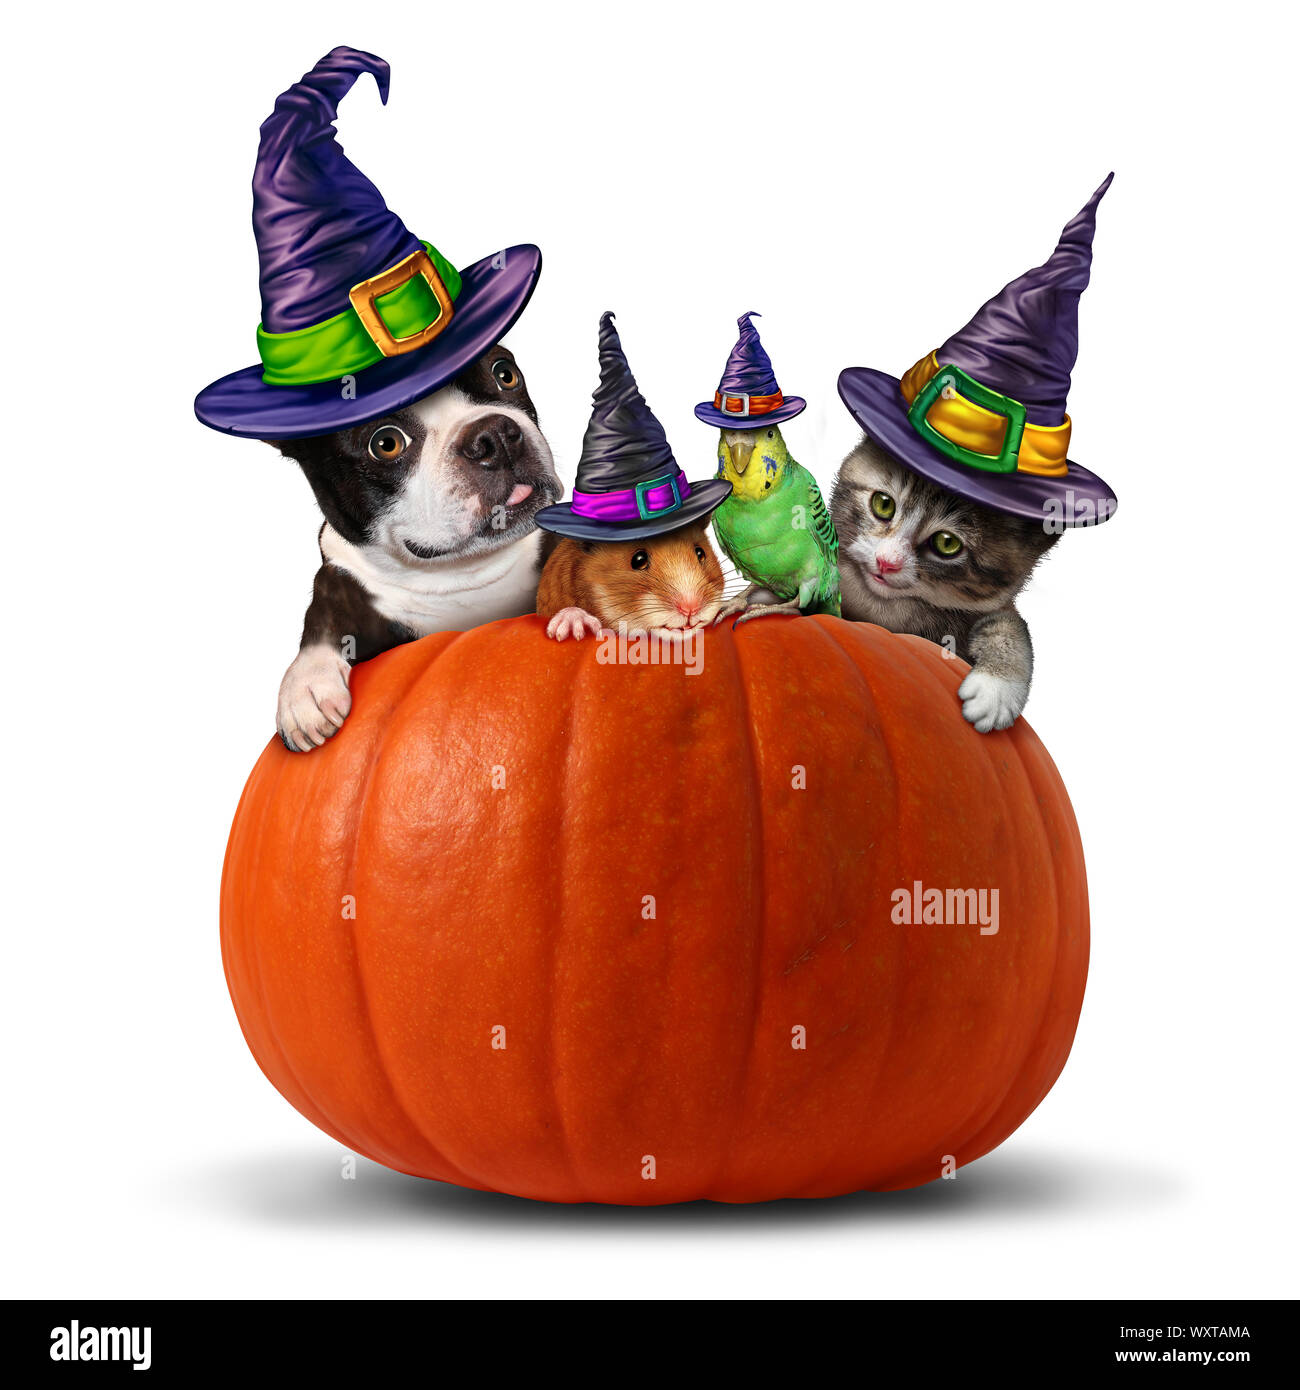 21/09/2020· we've curated 15 of our favorite cat and dog halloween costumes of 2020, including yoda, superman, and the notorious rbg. Pet Halloween Symbol As A Group Of Pets As A Dog Cat Bird And Hamster Dressed In Holiday Costumes Sitting On A Pumpkin With 3d Illustration Elements Stock Photo Alamy